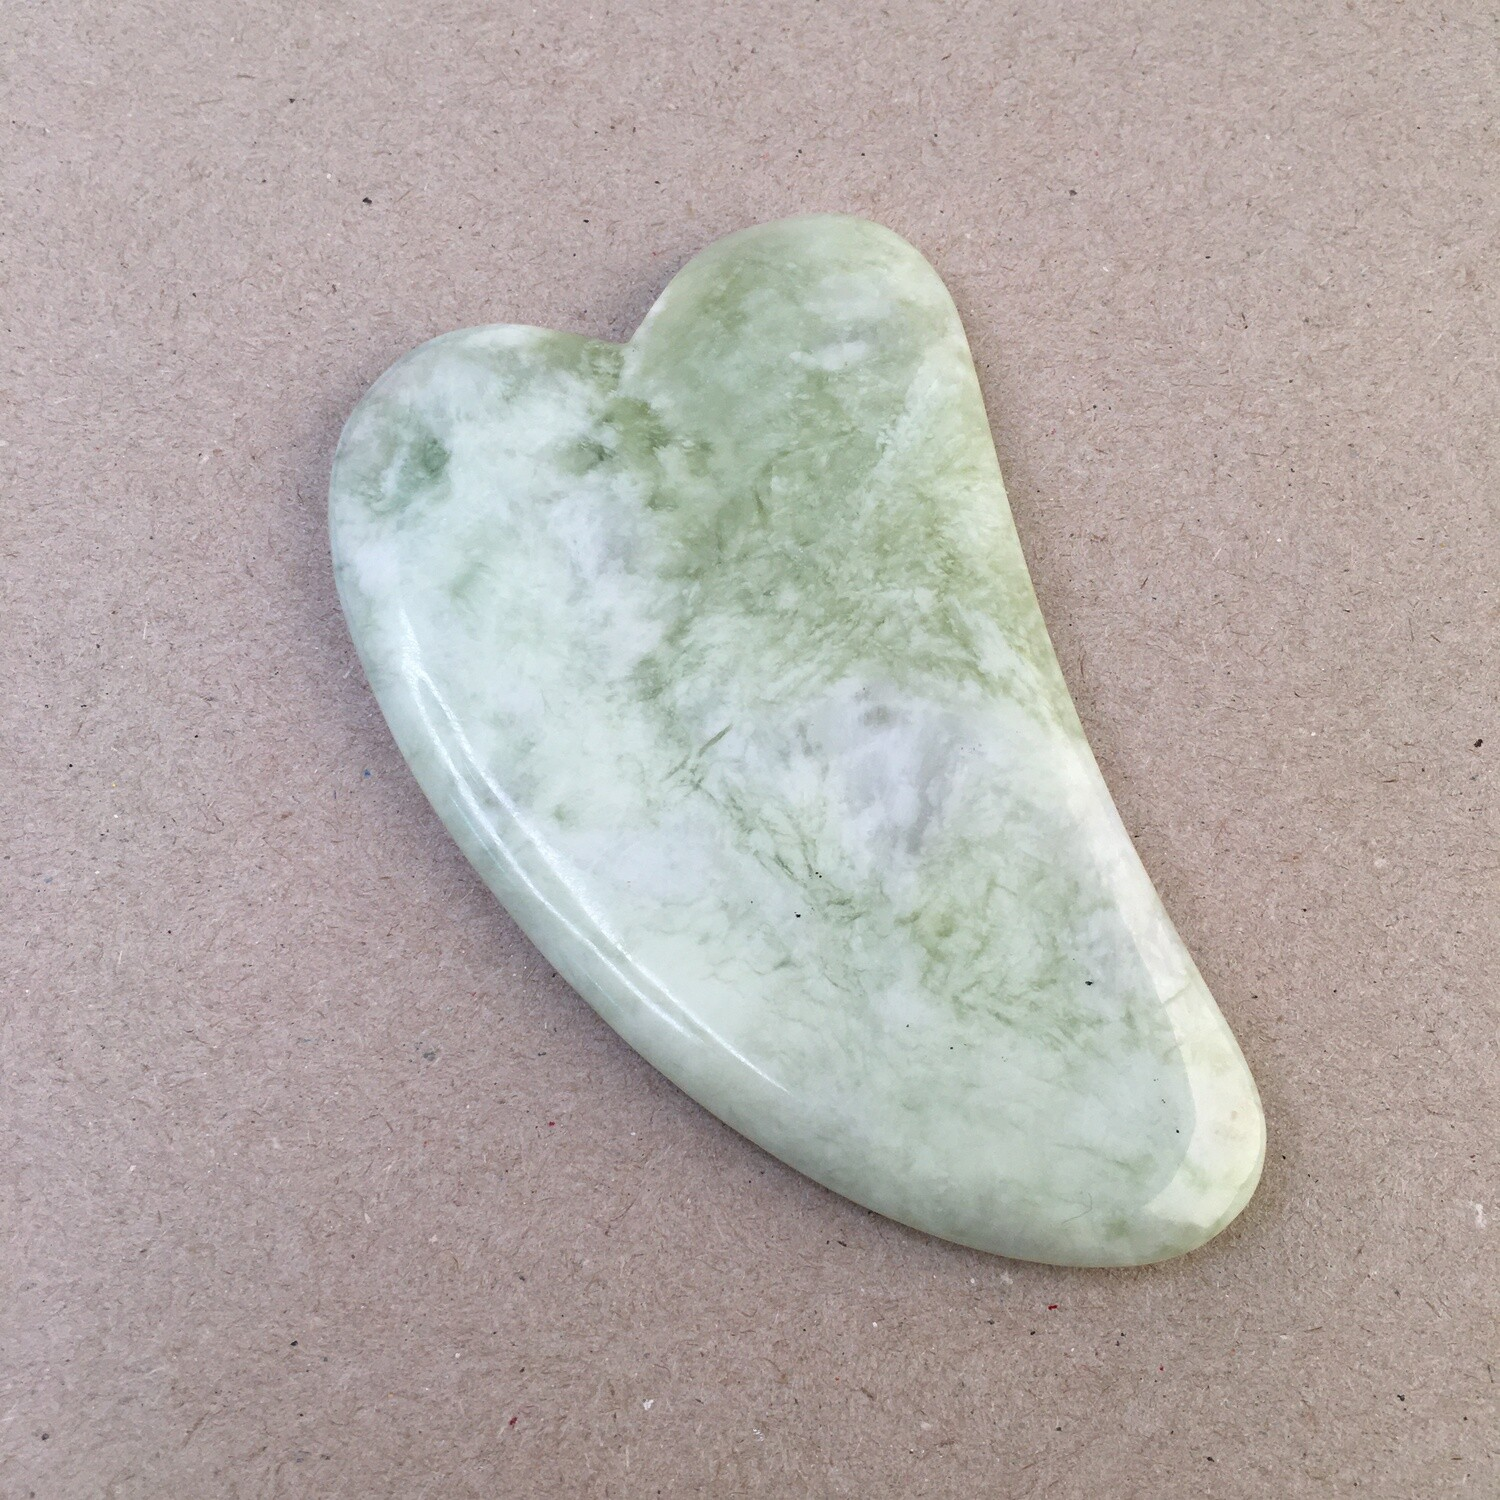 Gua Sha ophicalcite